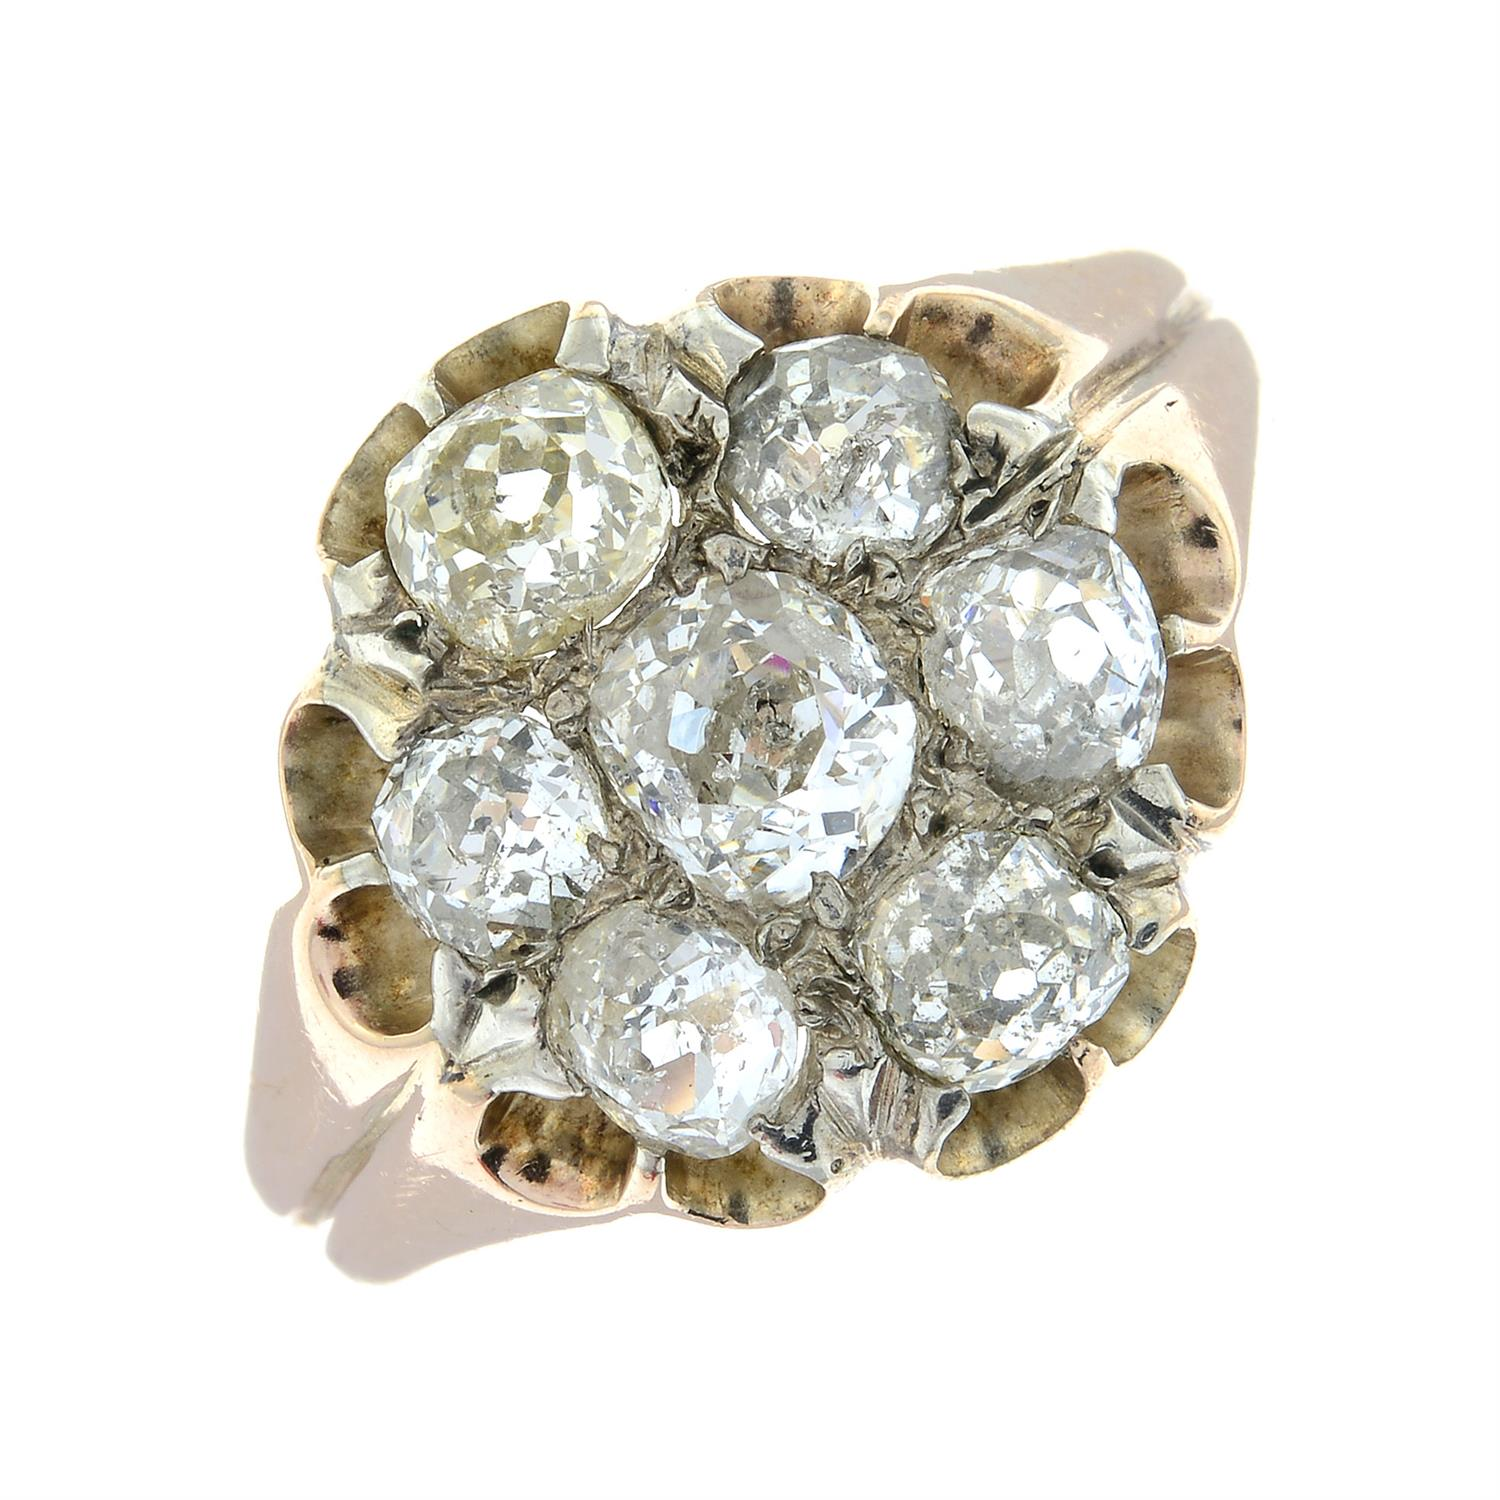 An early 20th century 9ct gold old-cut diamond cluster ring. - Image 2 of 6